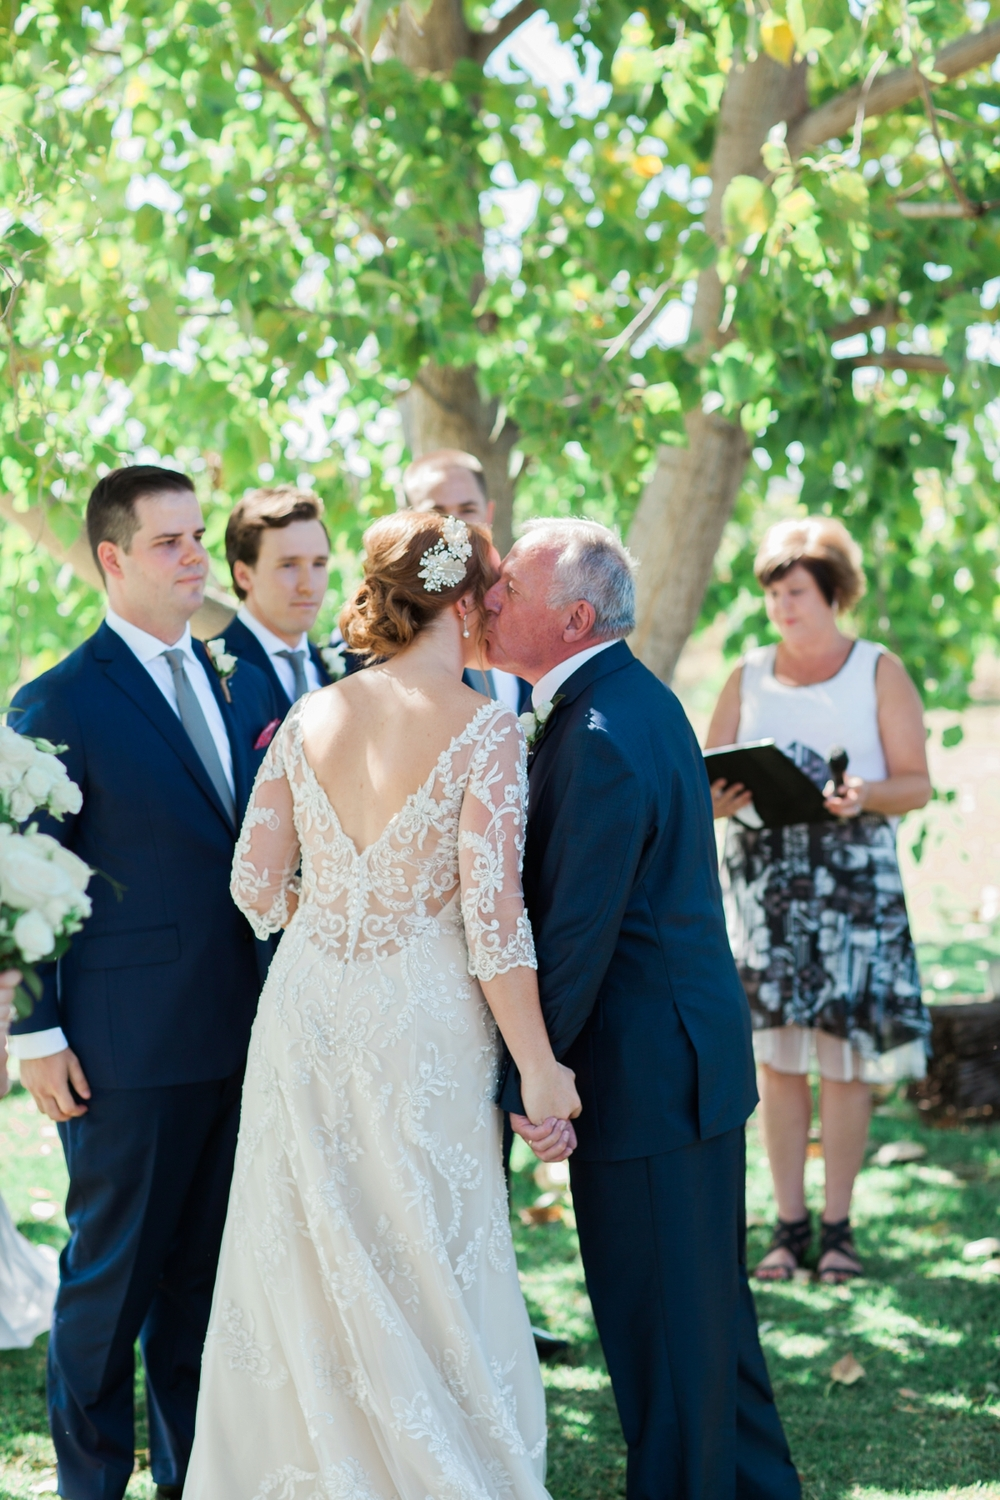 The Vine Grove Mudgee Wedding, Photography by Mr Edwards_1757.jpg